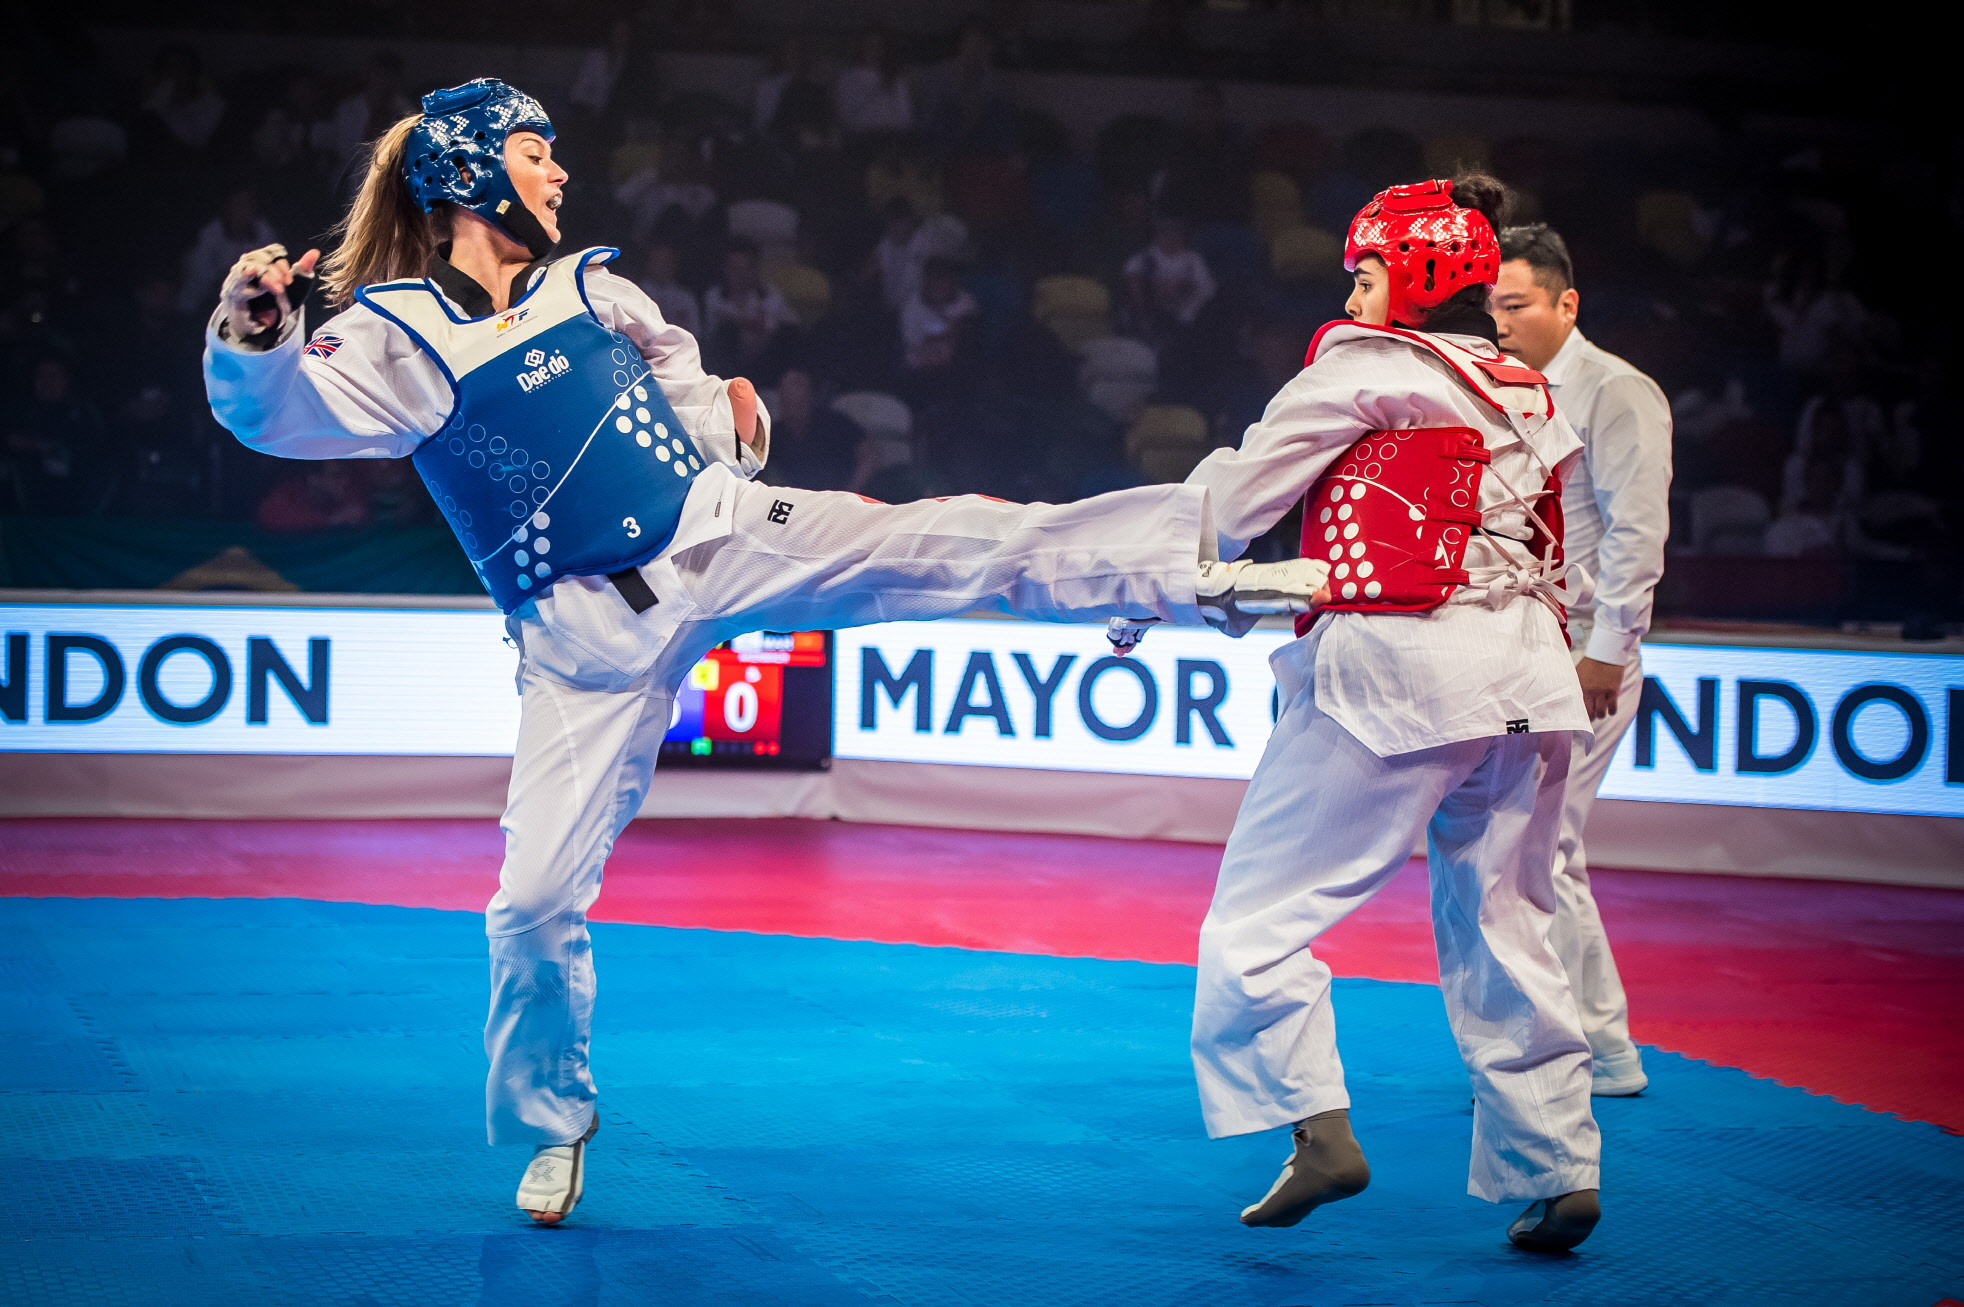 Amy Truesdale (left) competing in the final of Female K44 +58 at World Para Taekwondo Championships London 2017